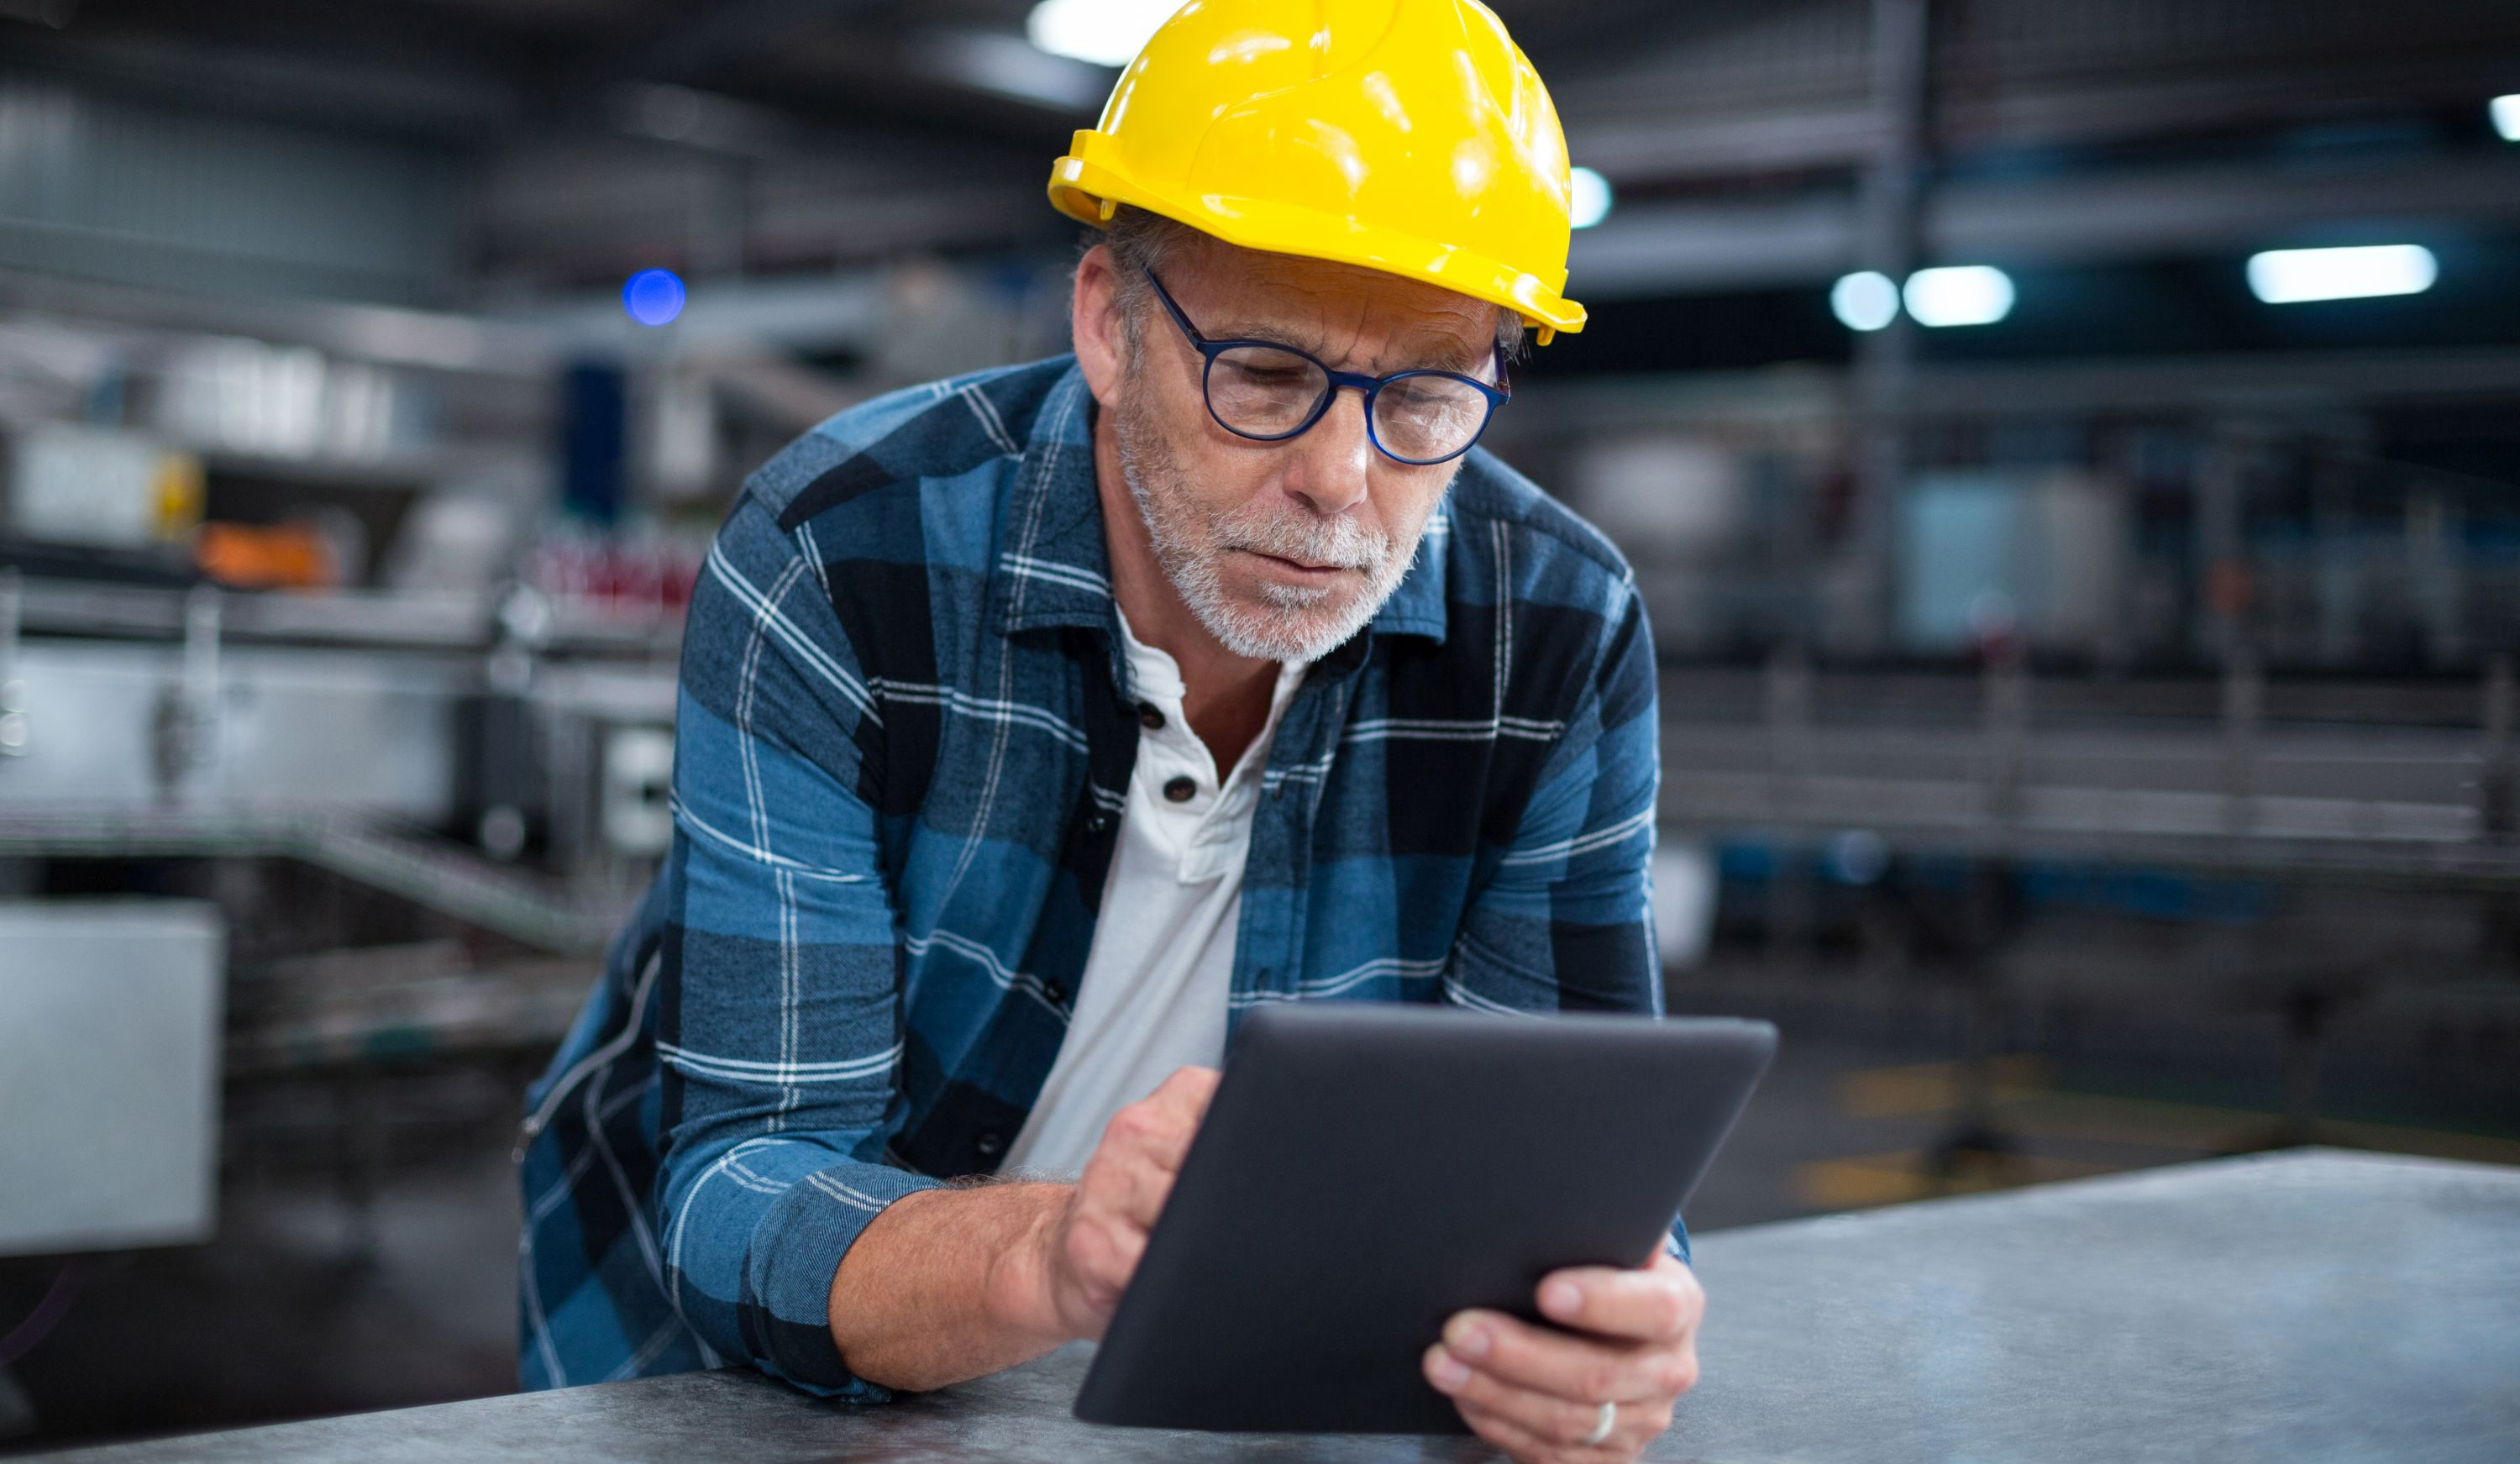 Factory worker using a digital tablet in factory